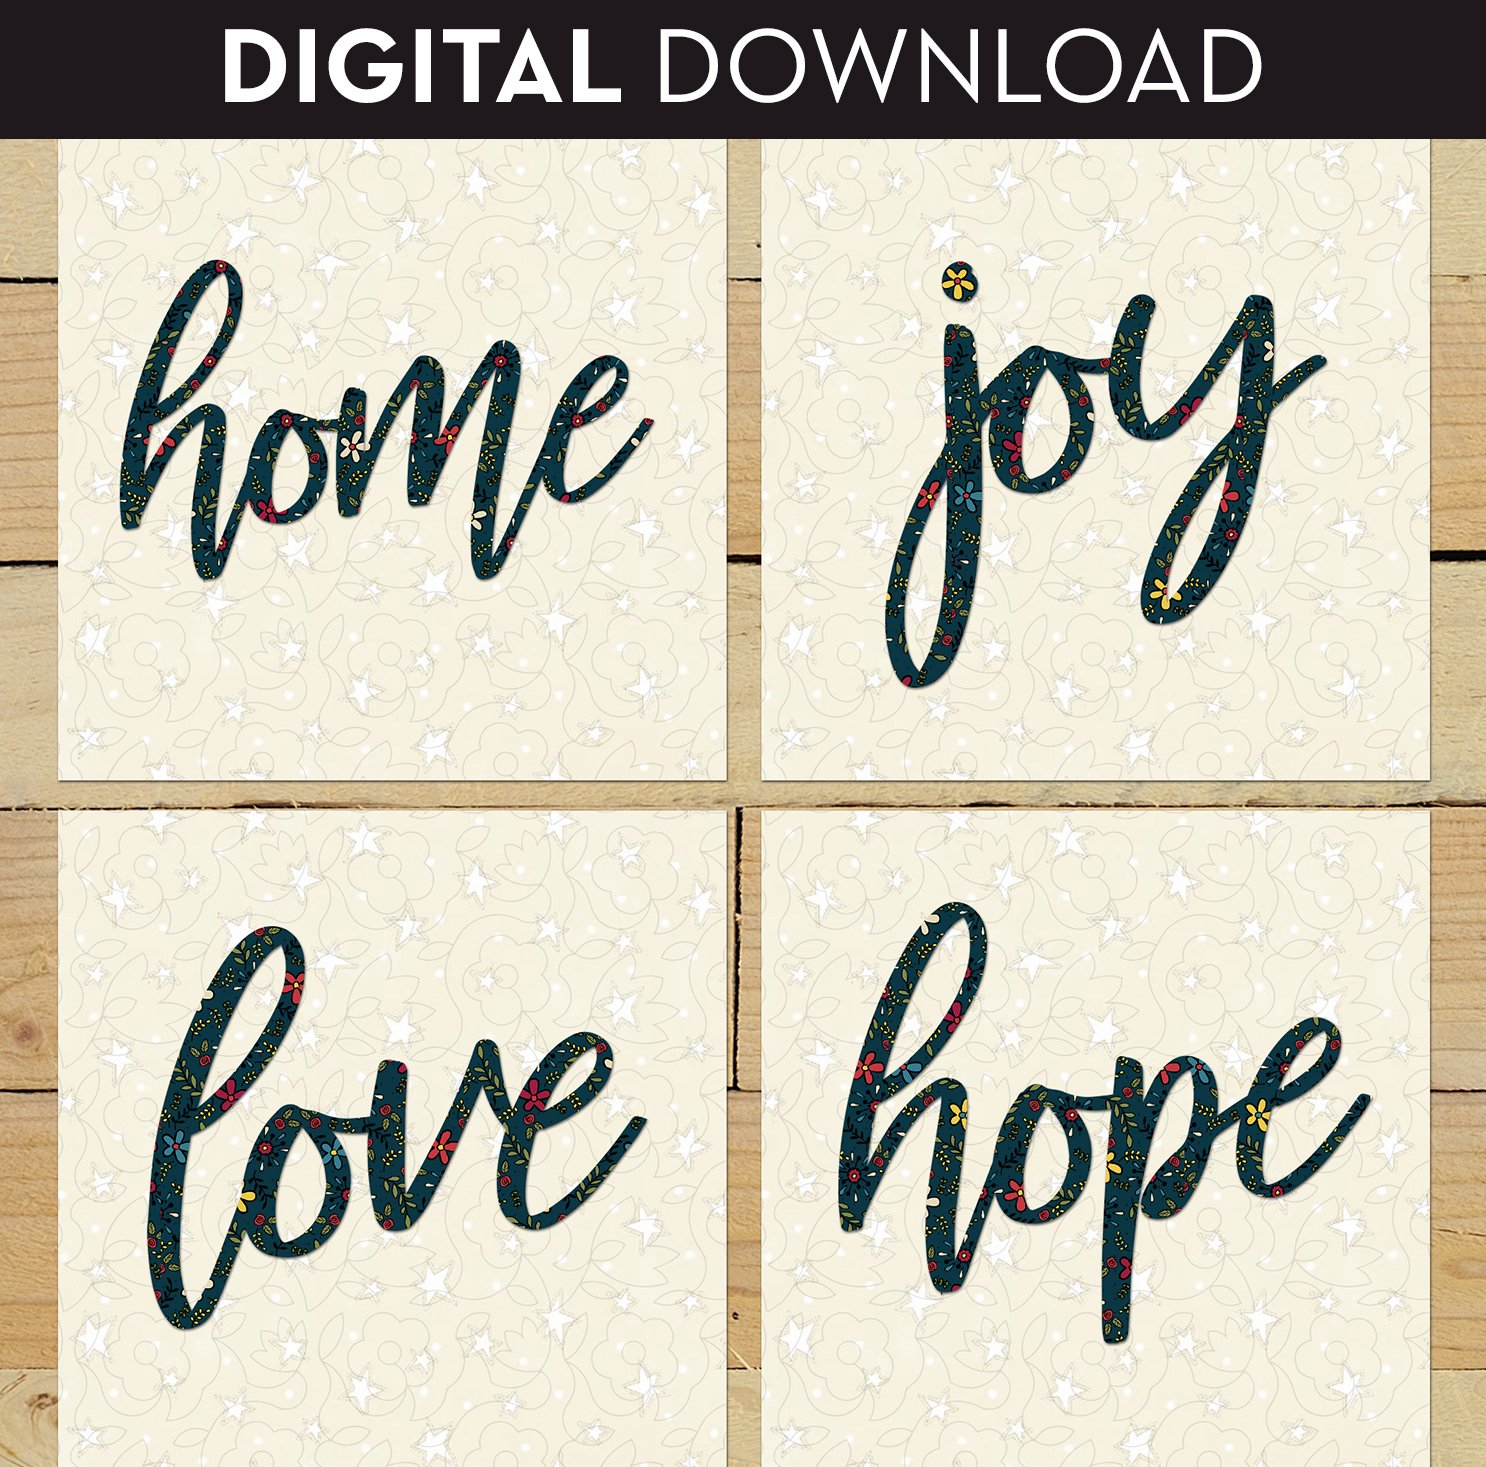 Home Joy Love Hope - Download